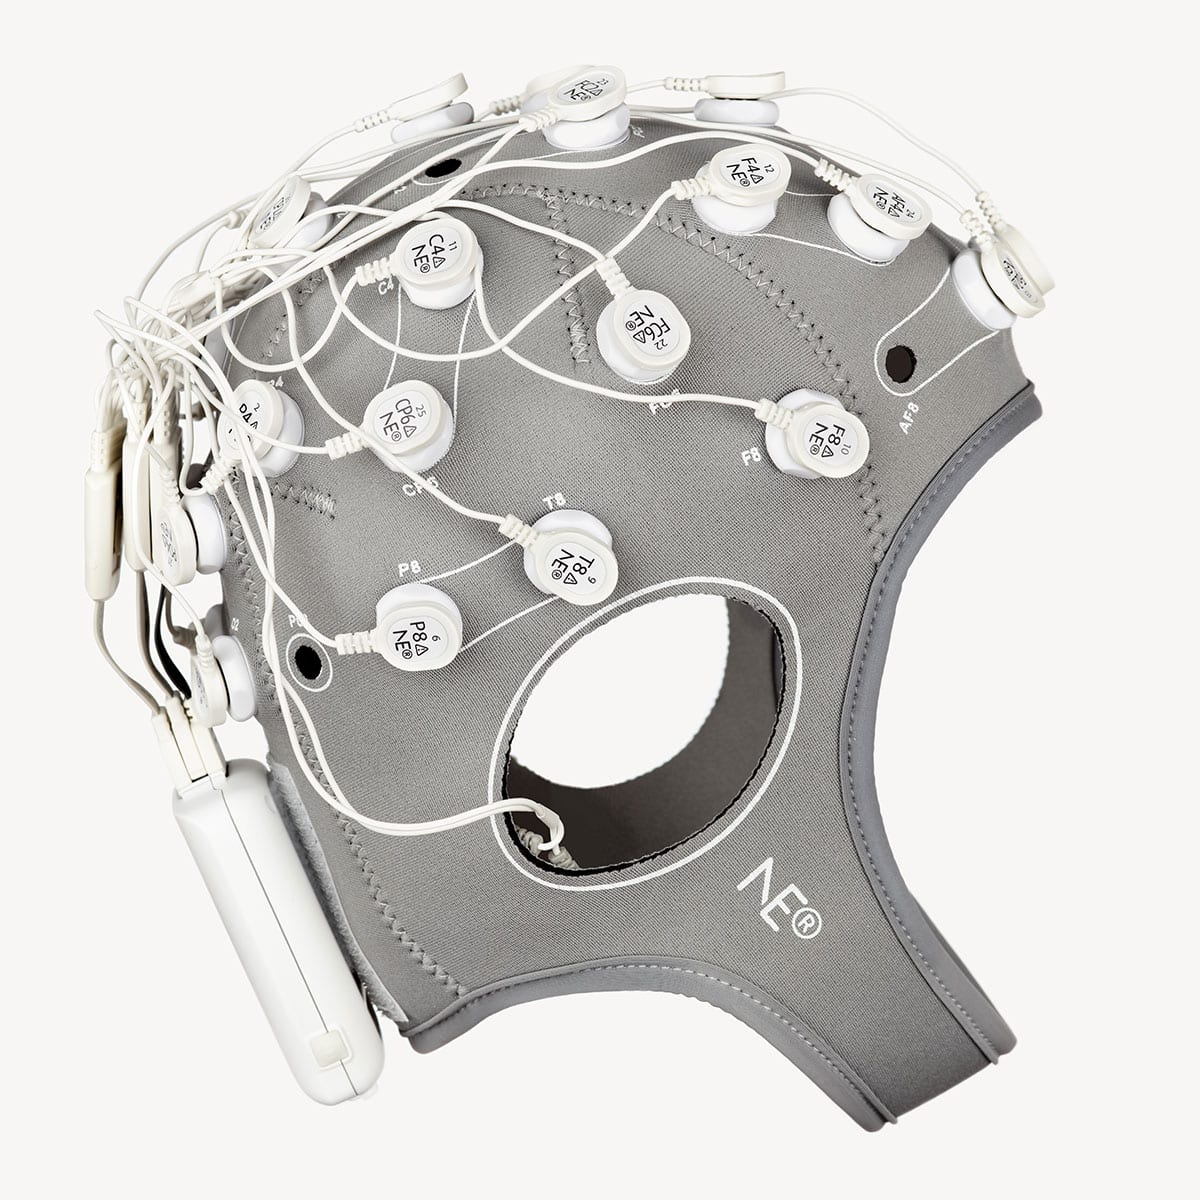 Neuroelectrics Enobio 32 on girl's head profile view